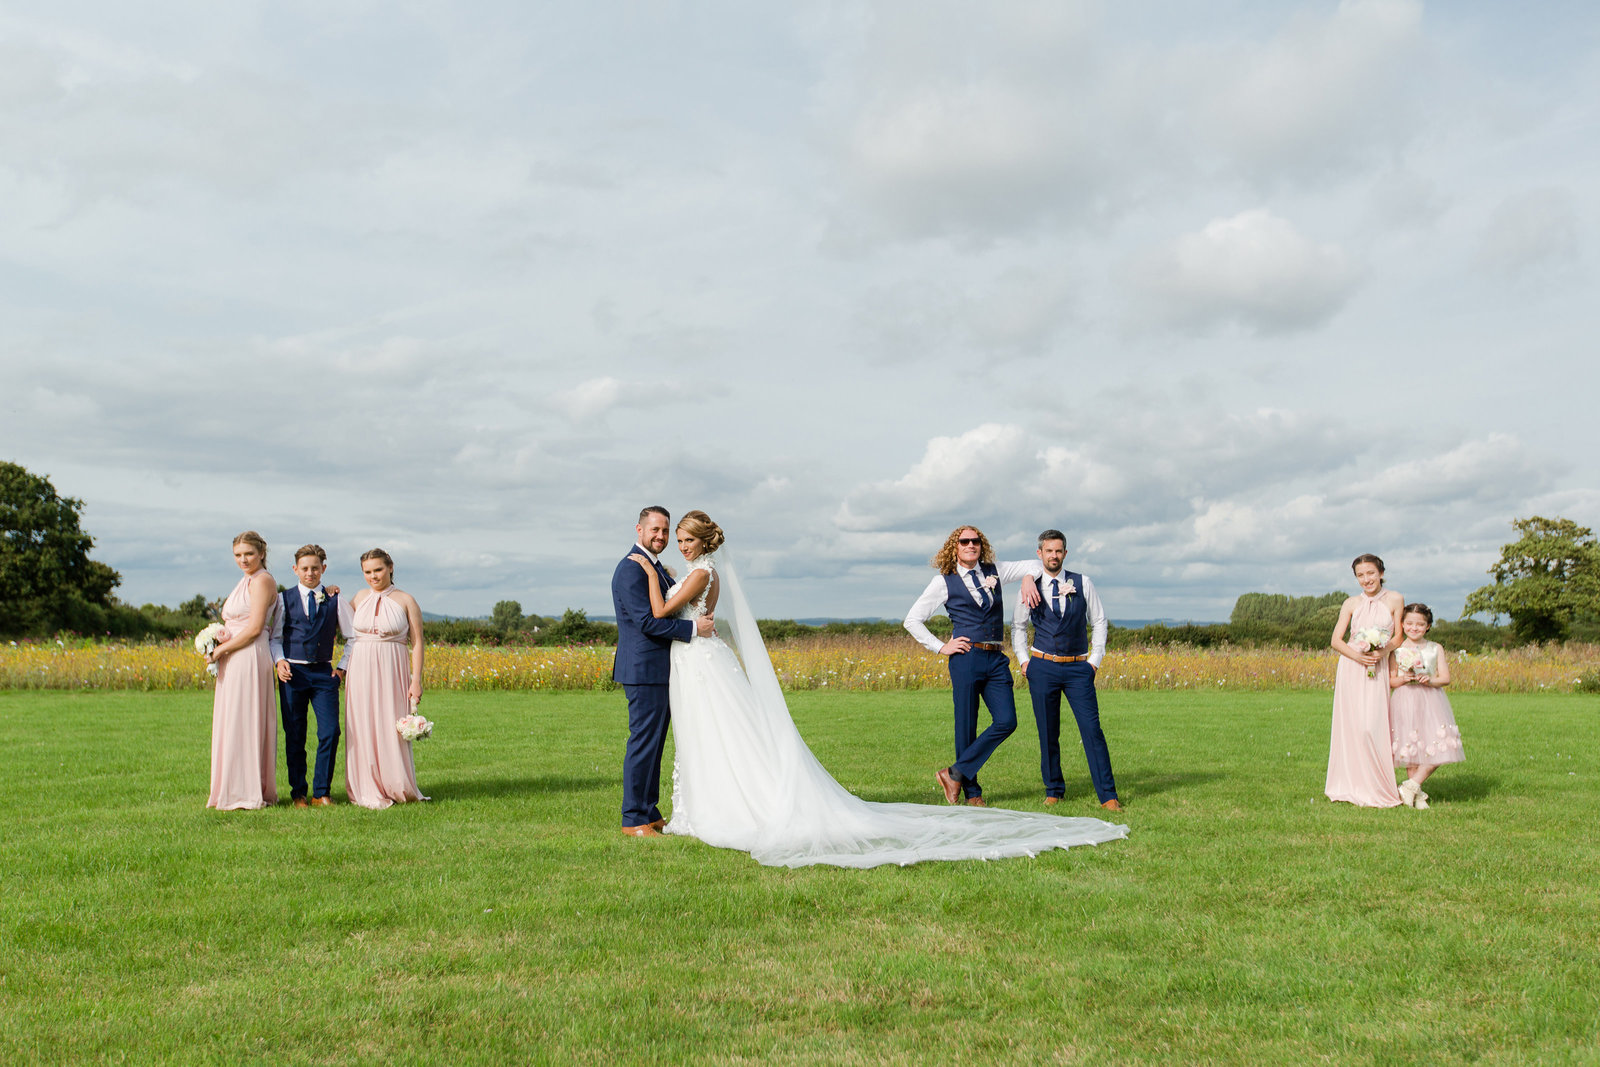 adorlee-0284-southend-barns-wedding-photographer-chichester-west-sussex